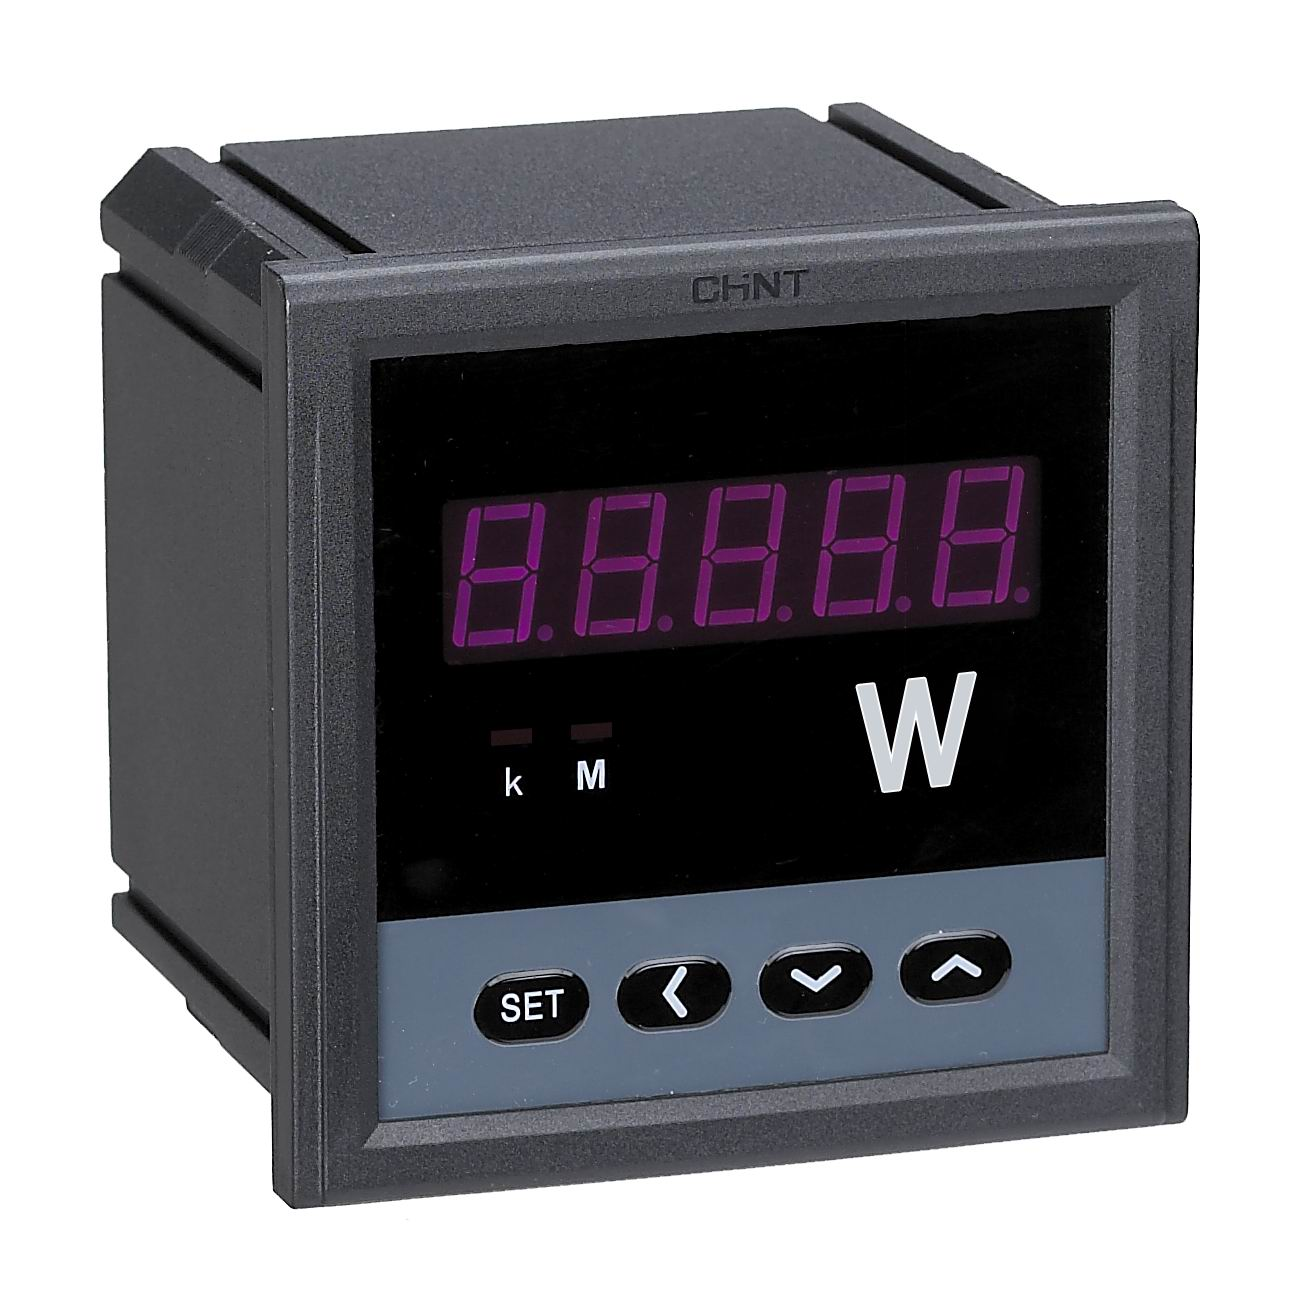 PS7777-□ series digital active/reactive power meter